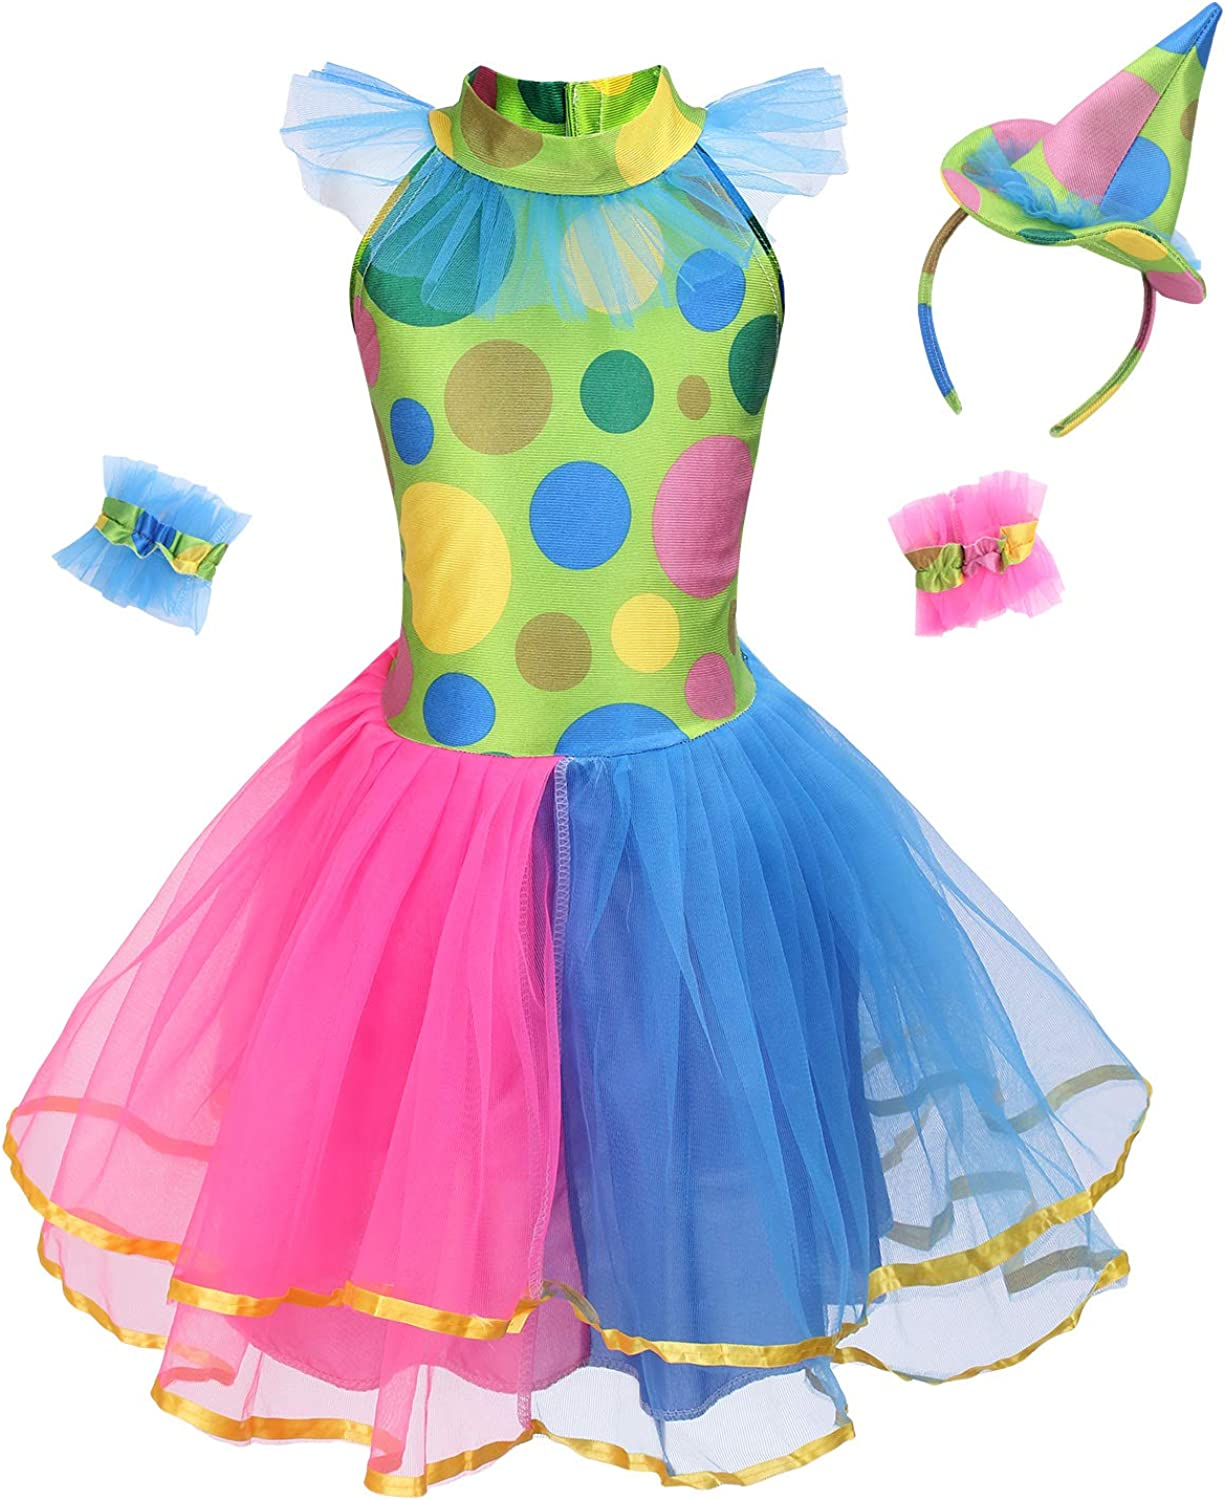 Funny Role Play for Mardi Gras Dress Up yolsun Clown Costume